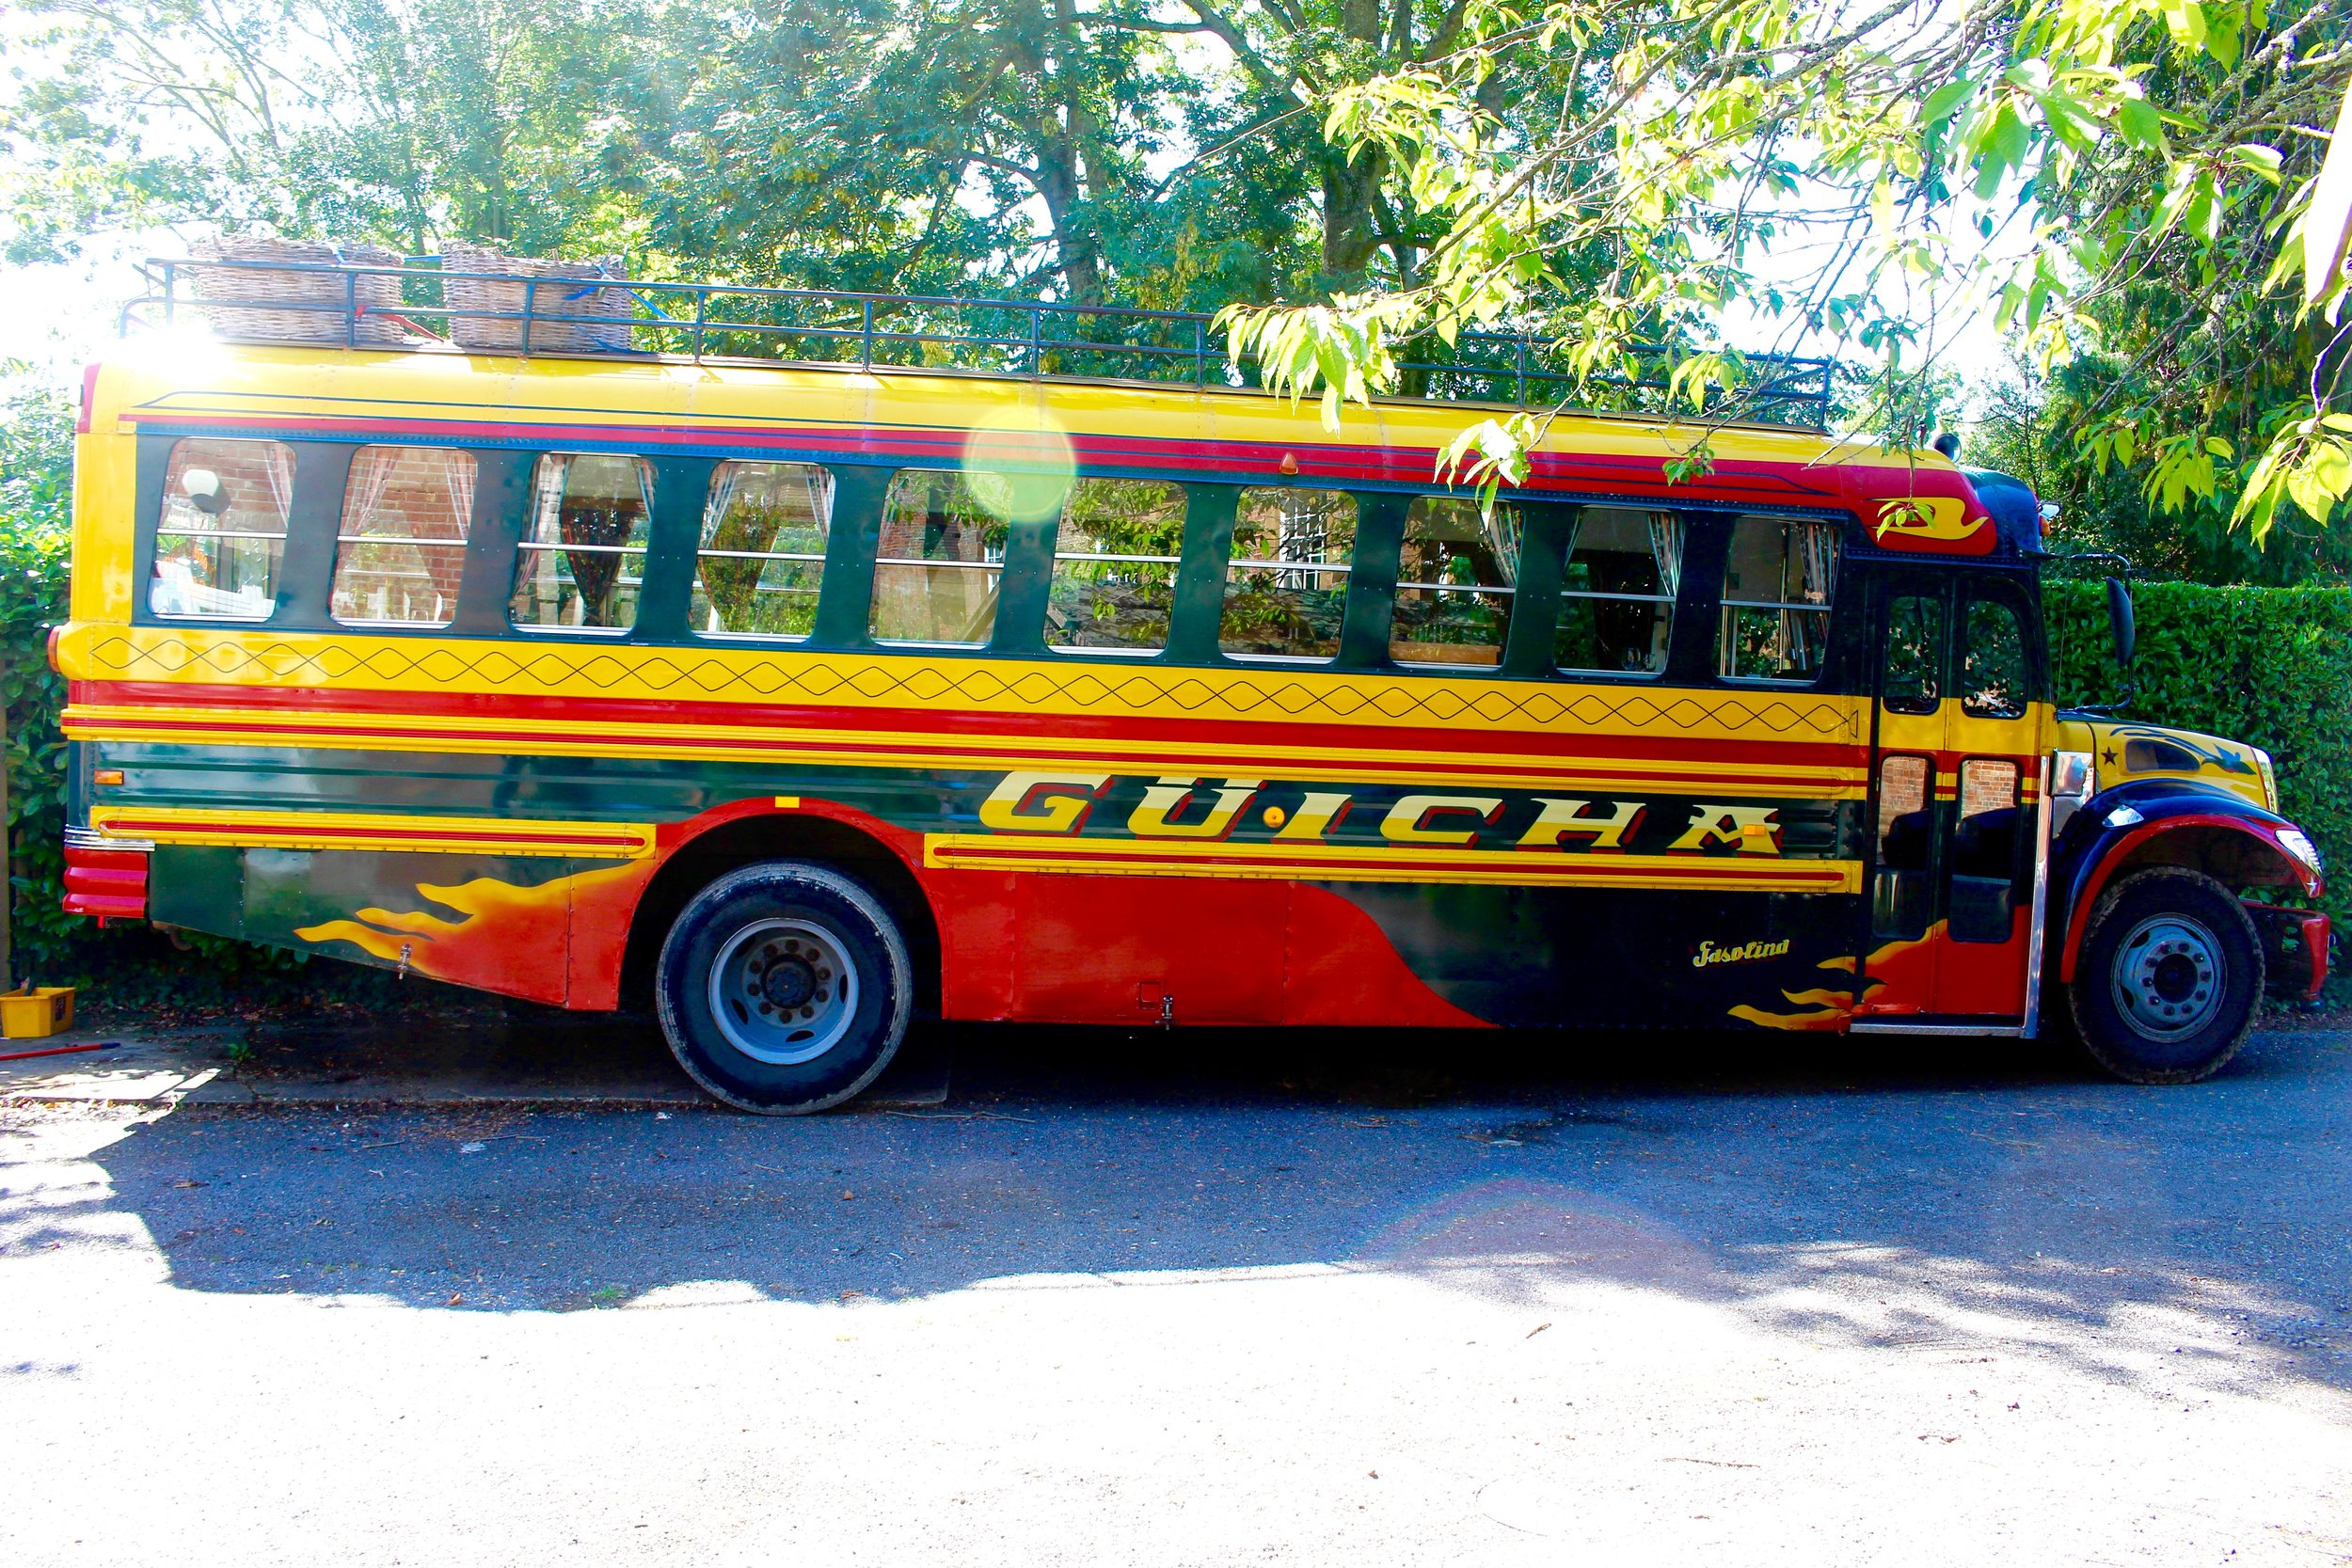 Hire our bus for your event! - Meet Güicha, a 1980's Guatemalan Chicken Bus! Kitted out as a café, she'd ready to serve at events such as weddings, birthdays, cocktail parties, champagne soireés (I mean, who doesn't hold a champagne soireè?)For more info head over to www.guichacoffeebus.co.uk